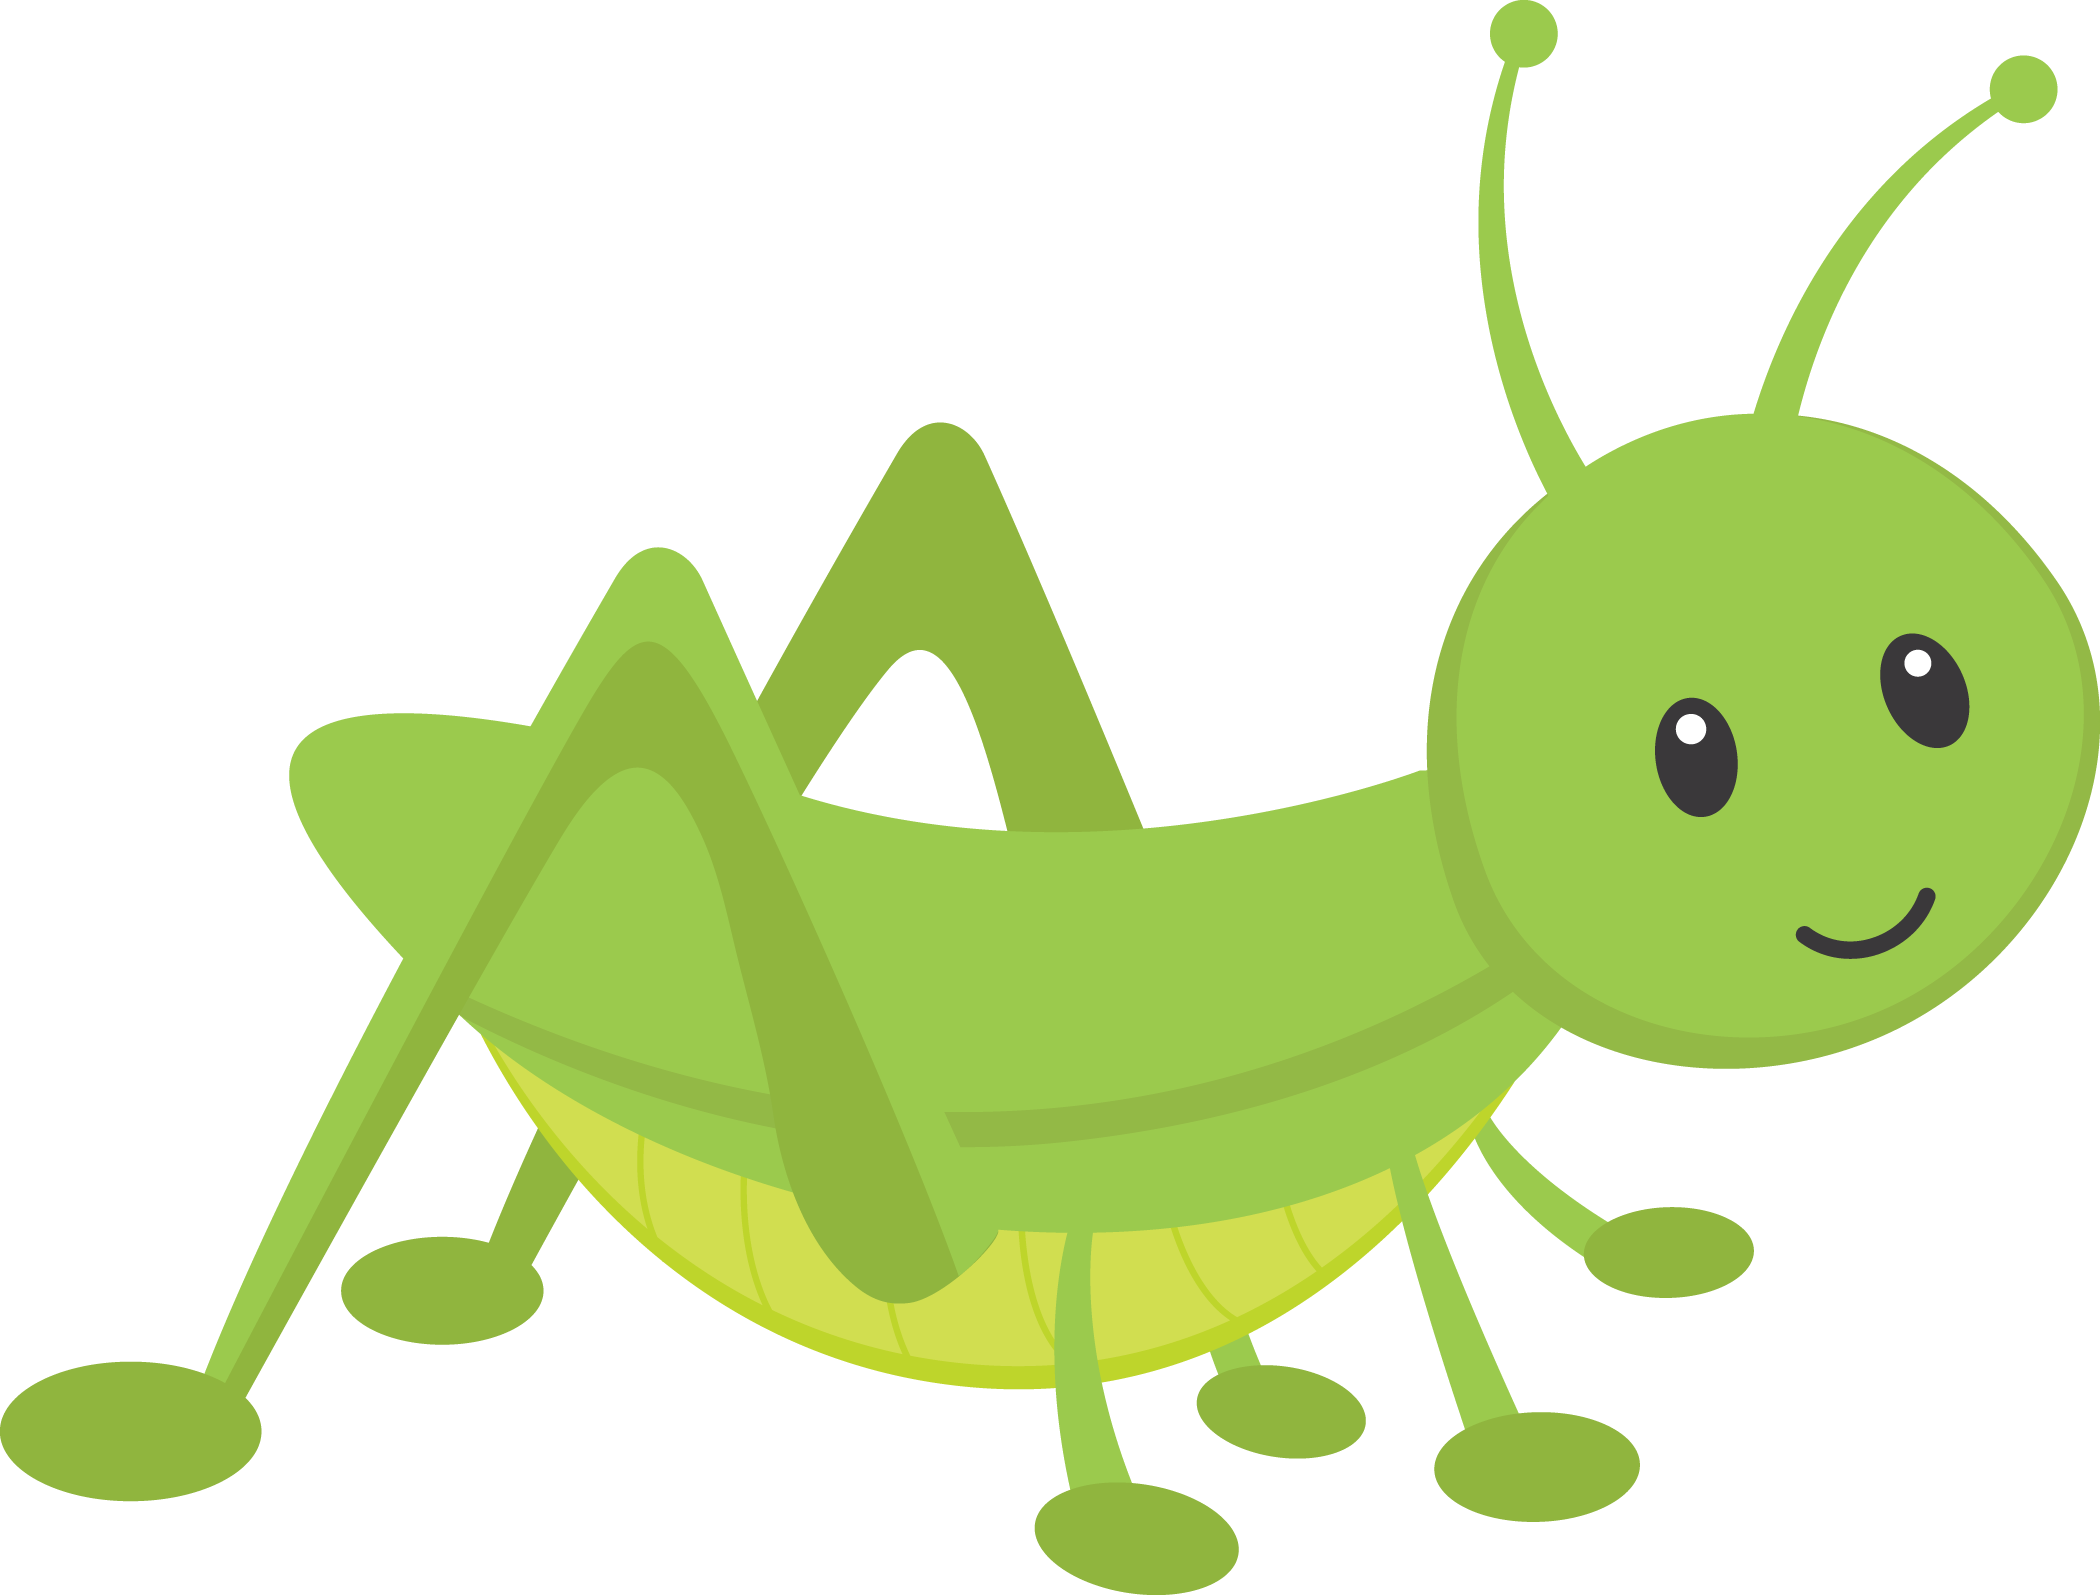 Insect clipart insect grasshopper. Ibguq h oaahbs png